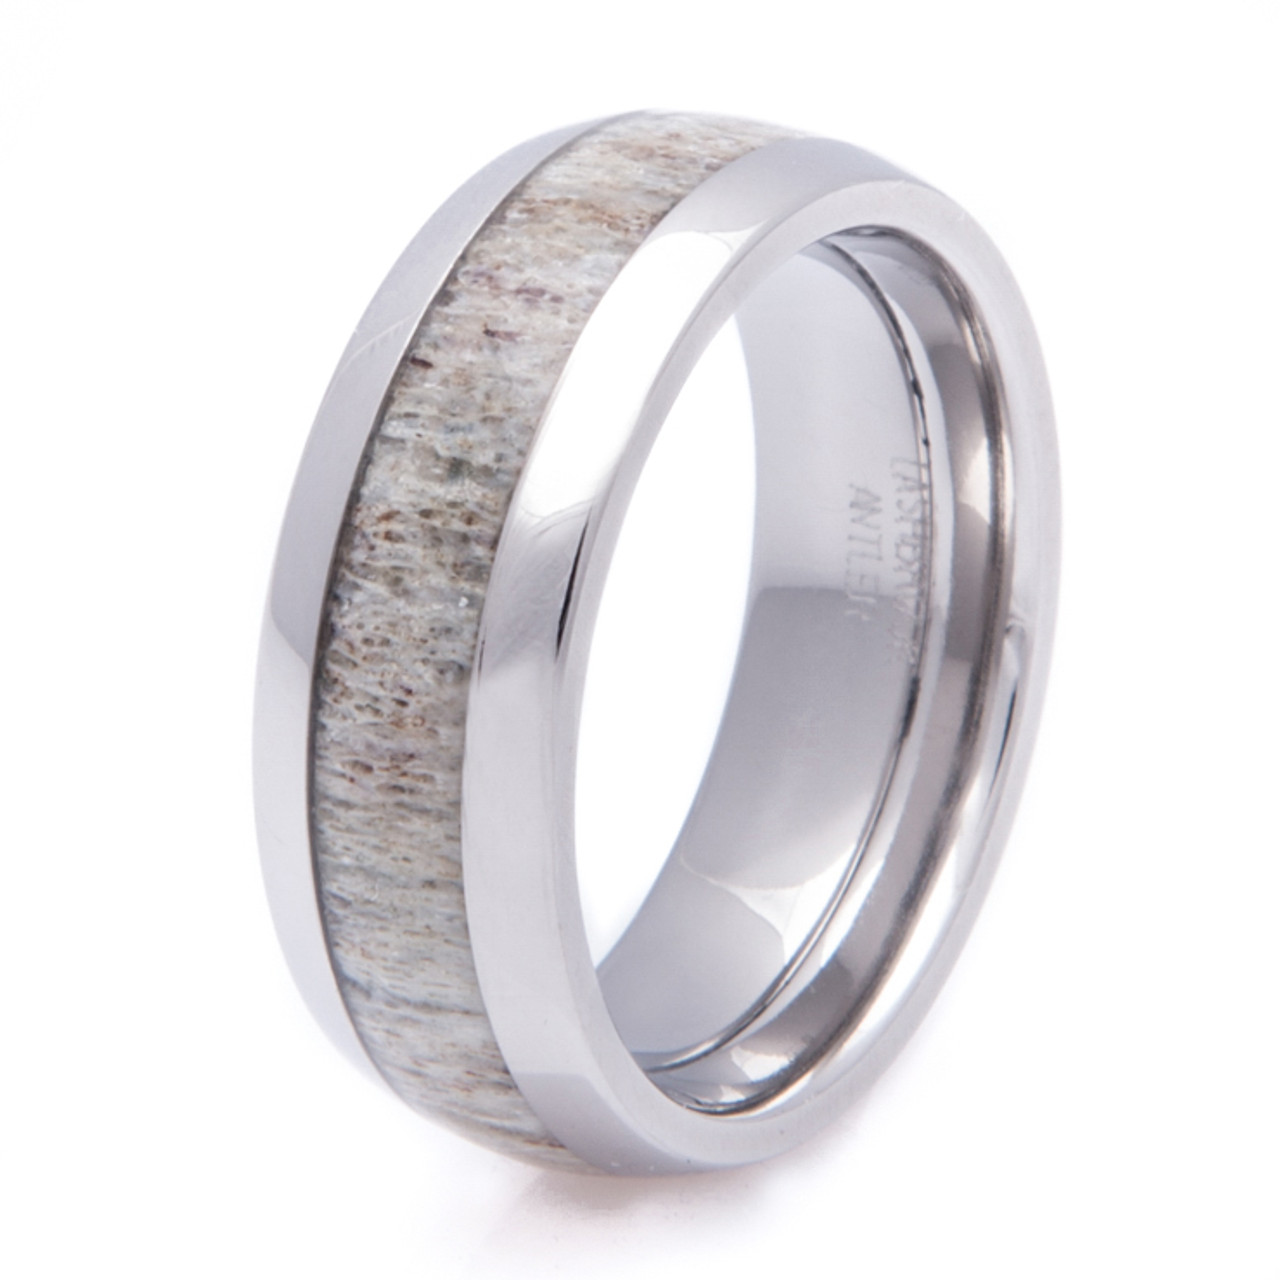 ring mens wedding deer whitetail antler tungsten dp with hammered rings comfort real edge fit